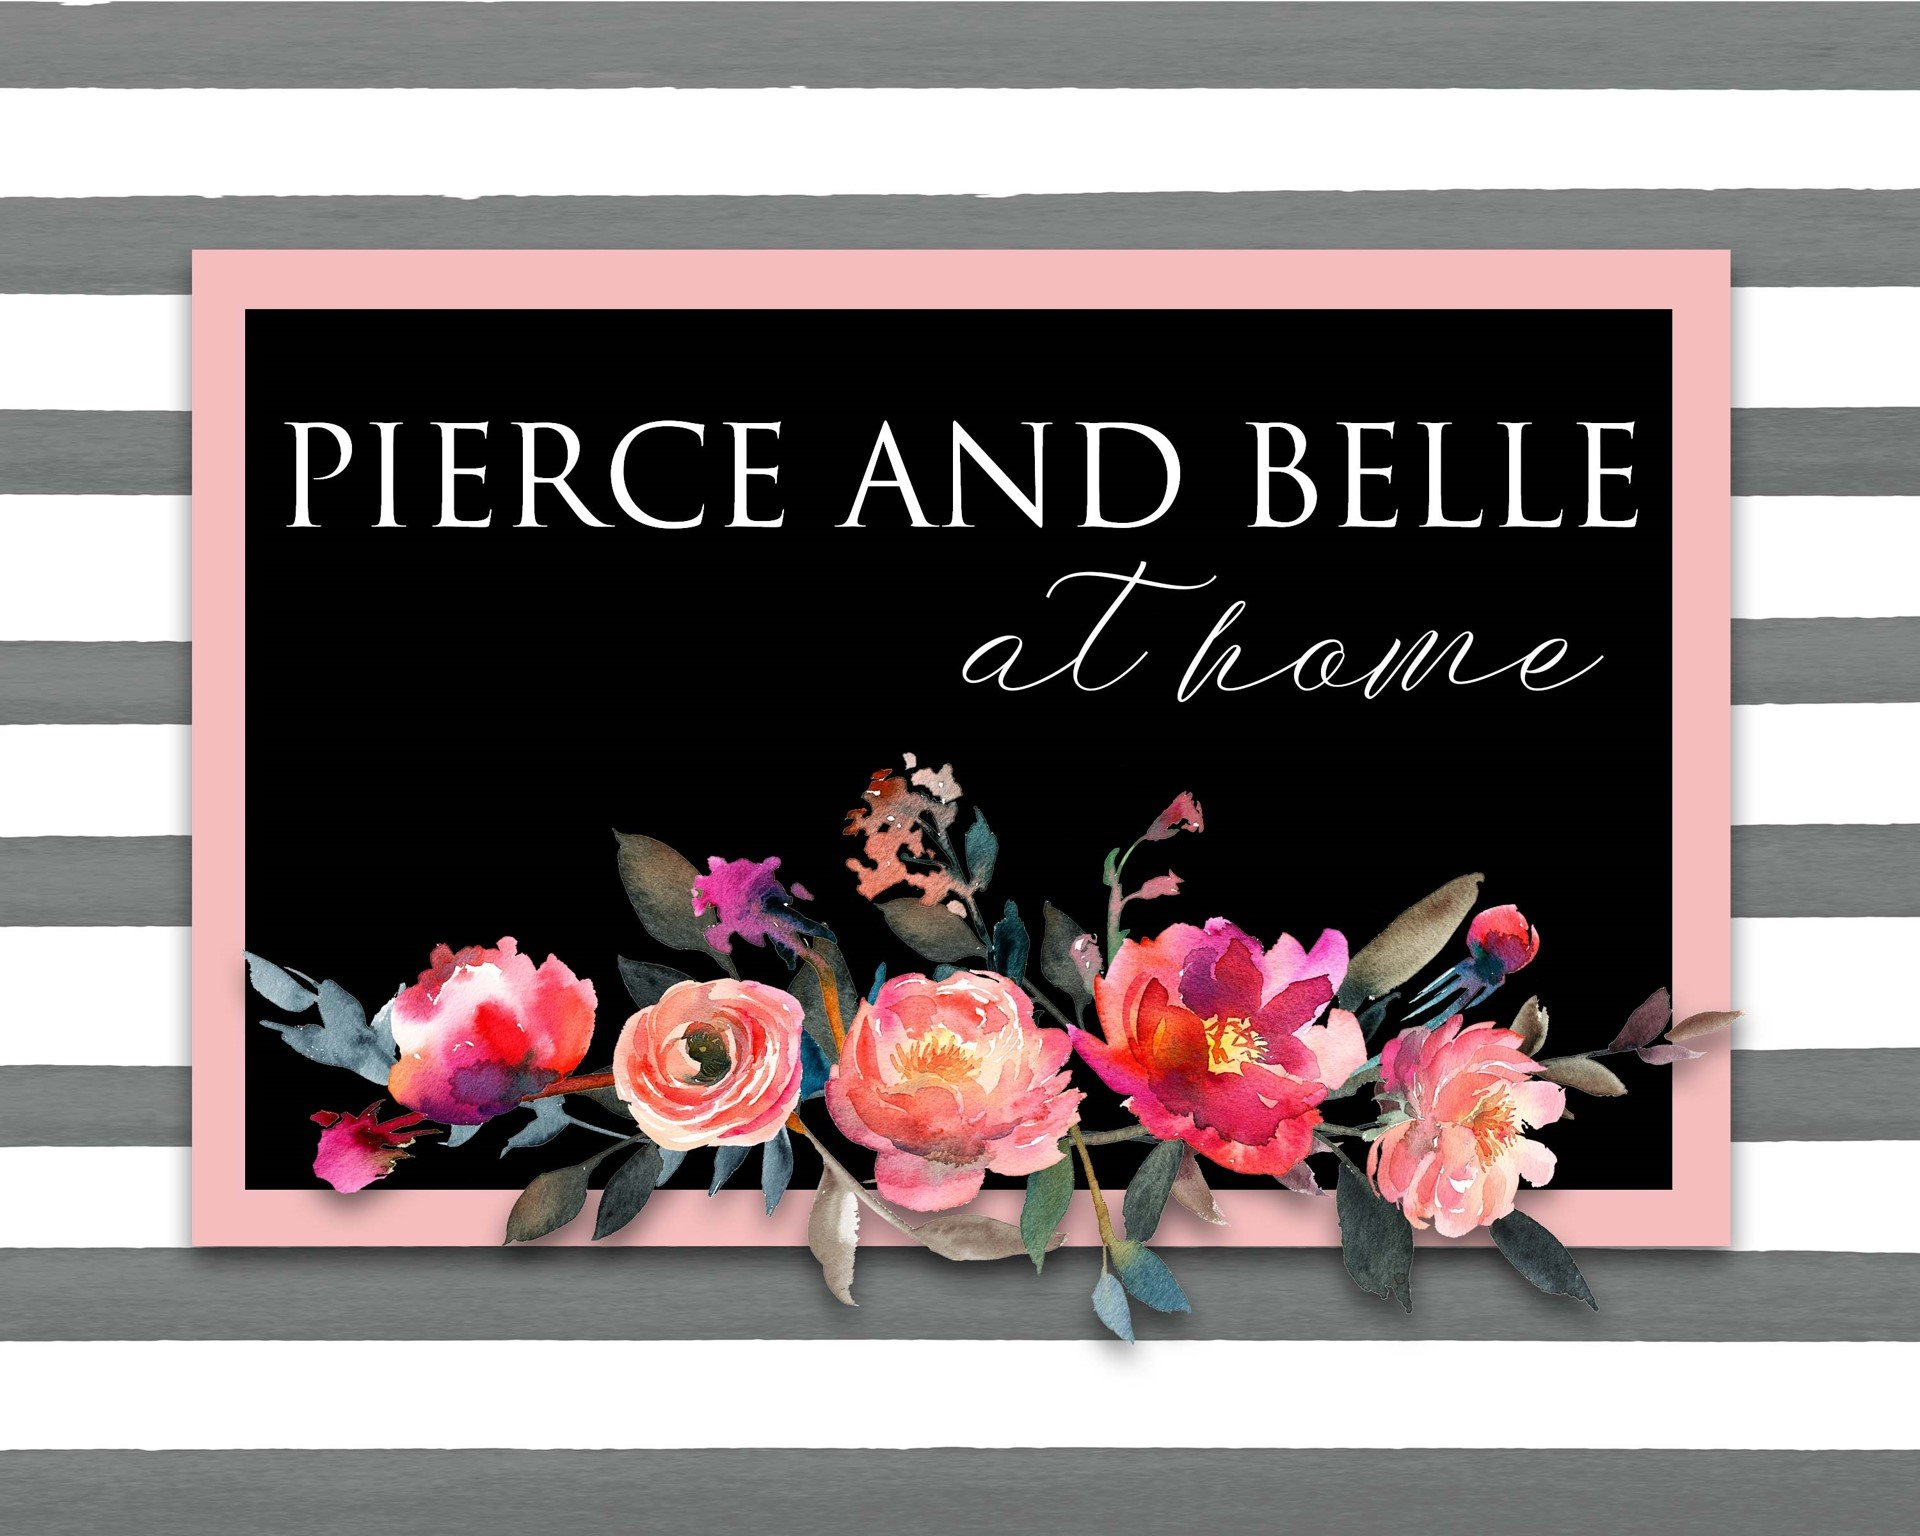 Pierce and Belle at Home